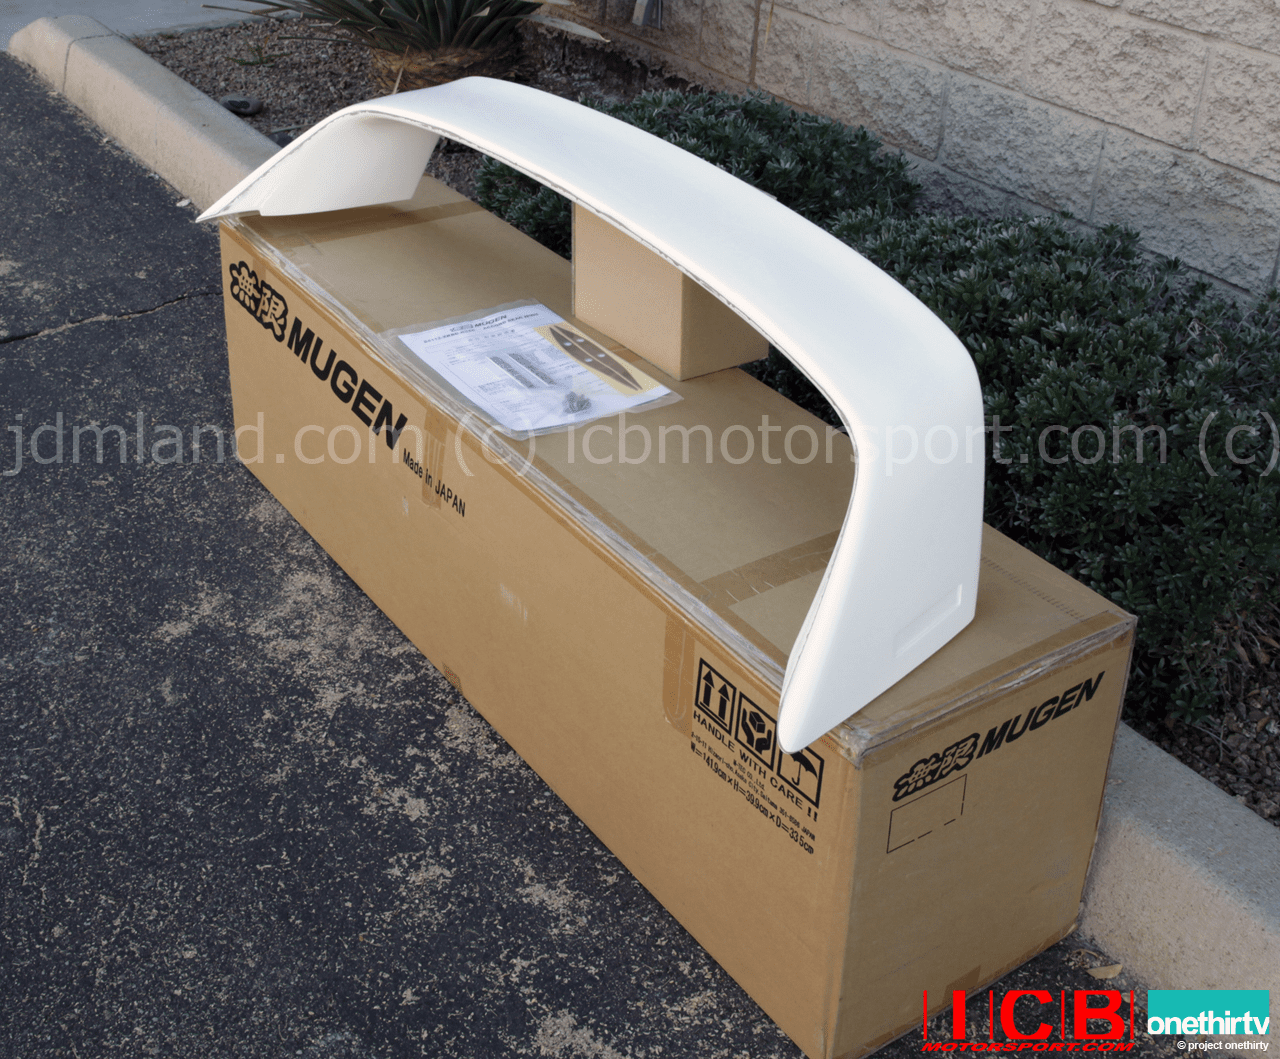 Mugen CL7 Accord Euro-R CL9 TSX 2004-2008 Rear Wing  84112-XKBD-K0S0-ZZ